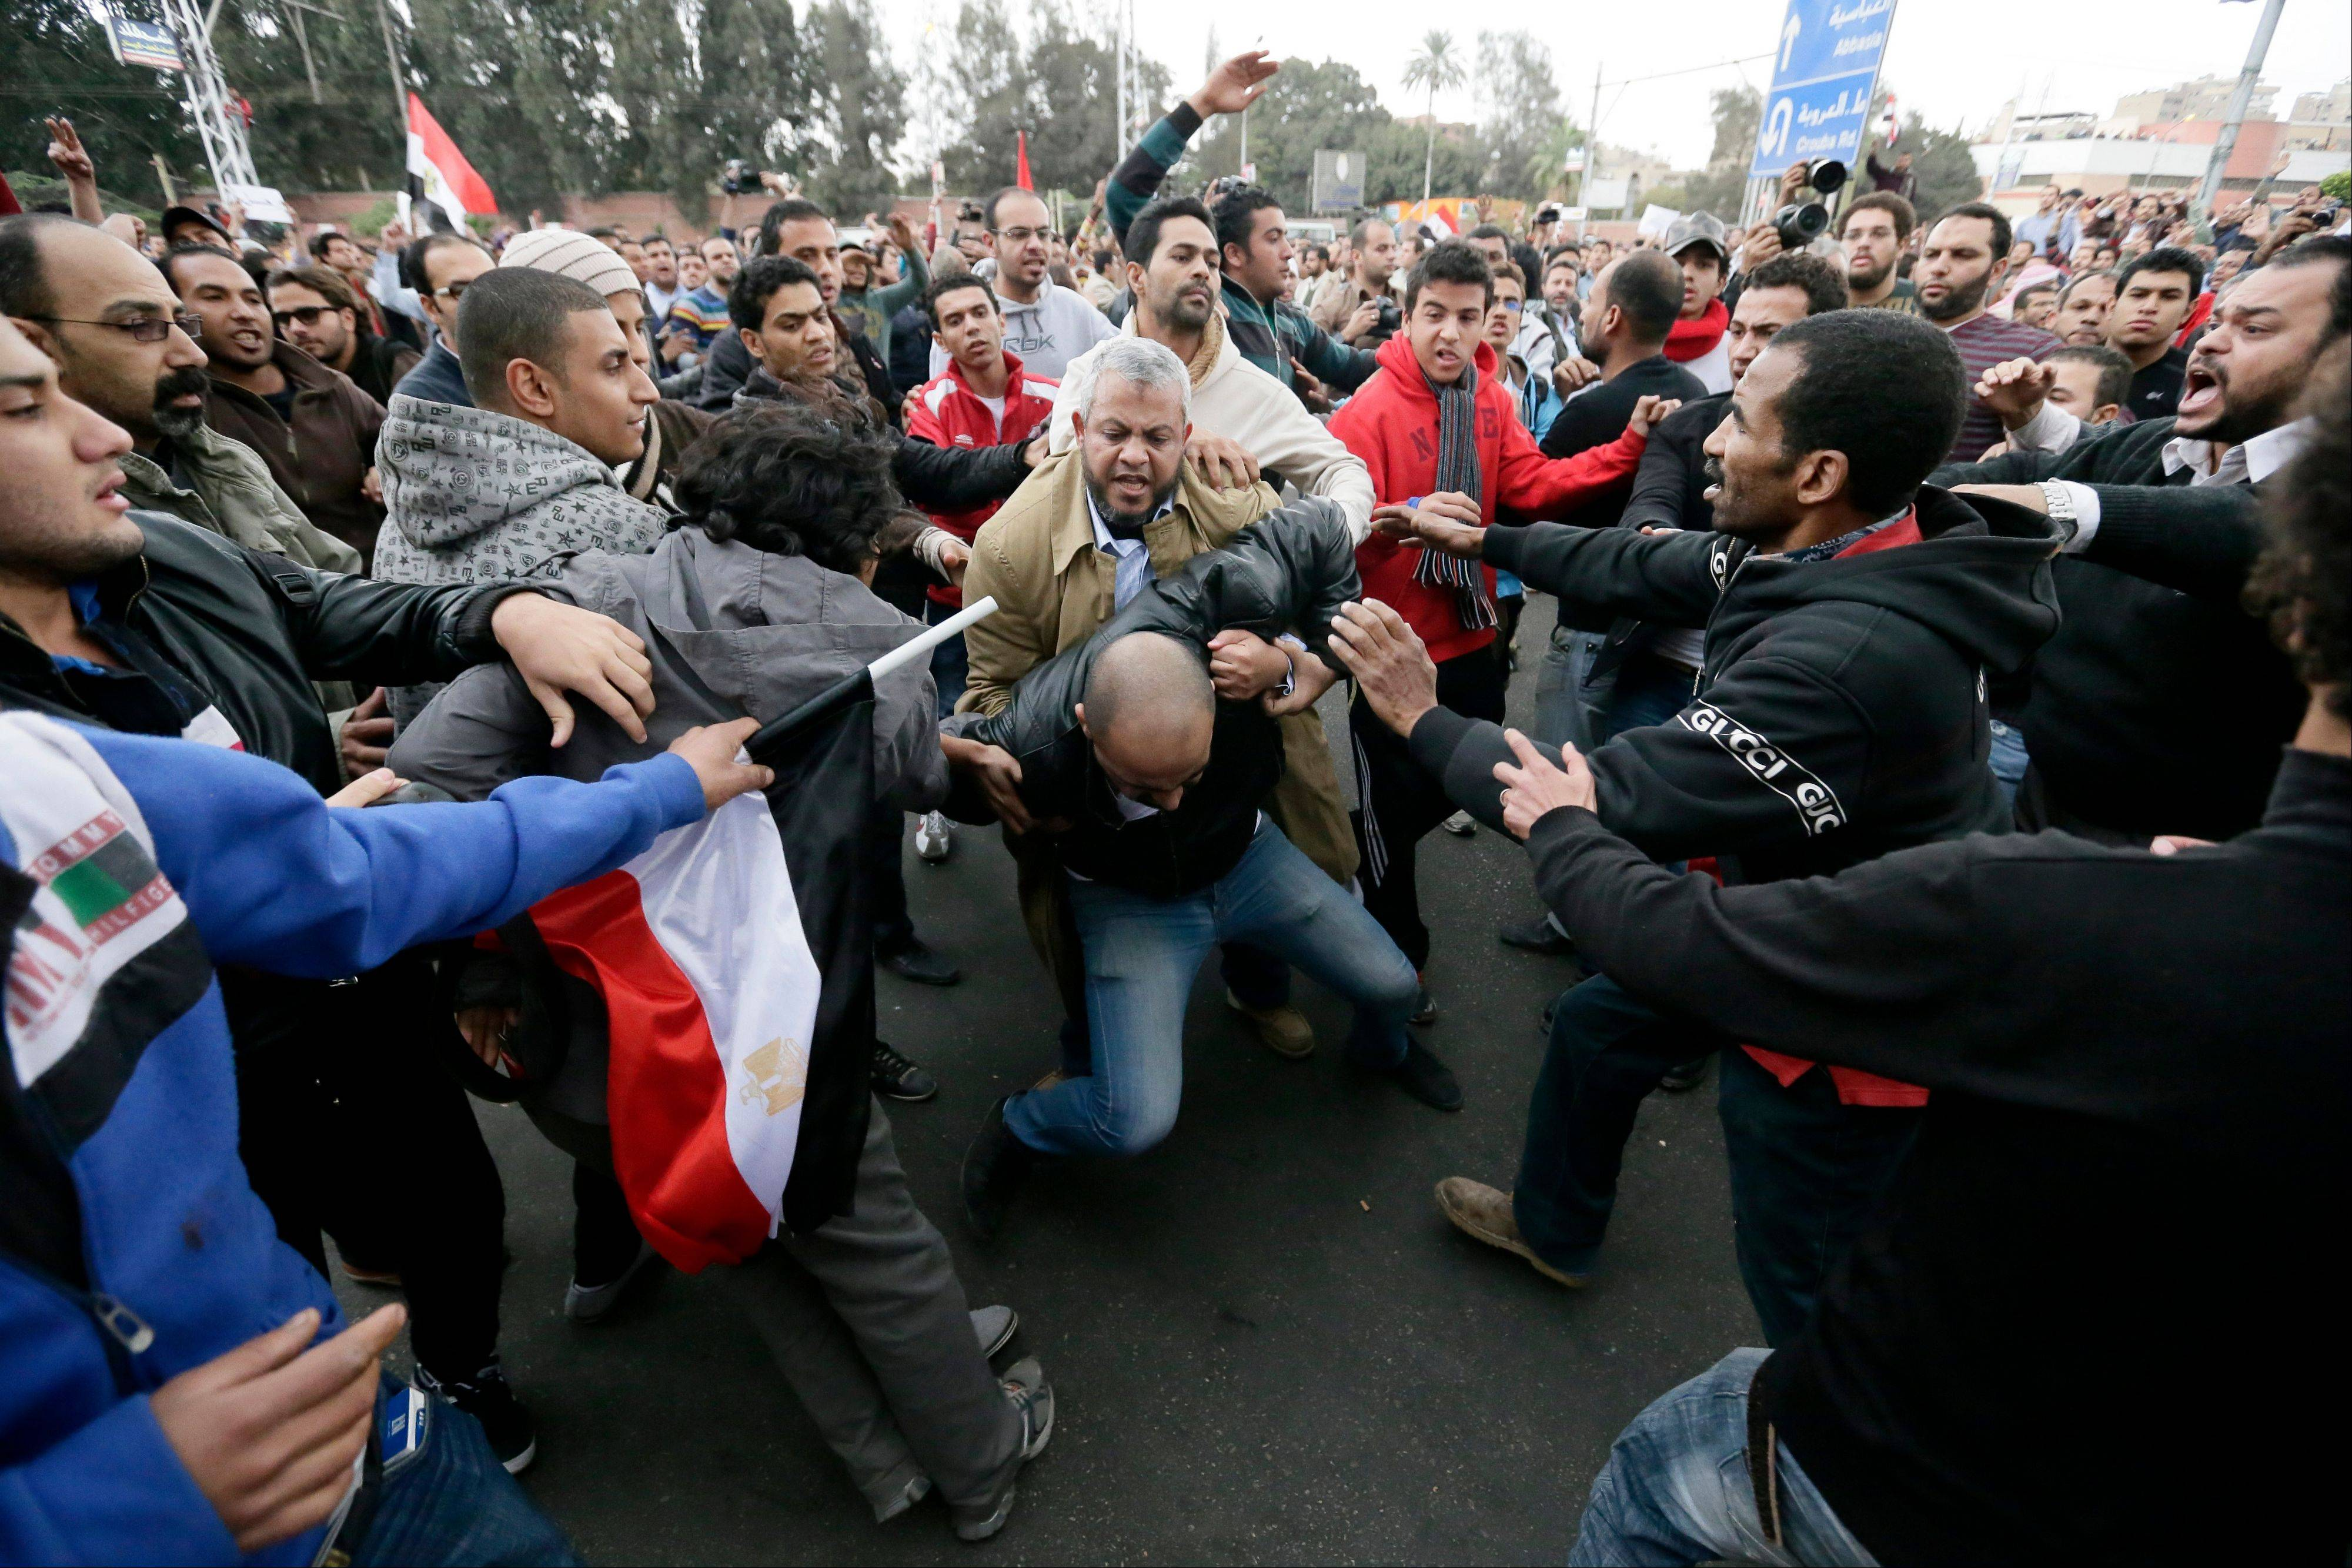 Associated Press File PhotoIn this Dec. 5 photo, Egyptian President Mohammed Morsi's supporters beat an opponent, center, during clashes outside the presidential palace, in Cairo, Egypt. The scene from bloody clashes outside the presidential palace a week ago hangs over Egypt's political crisis, as a daunting sign of how much more violent the confrontation between Morsi's Islamist supporters and the opposition that has launched a giant wave of protests against him can become.